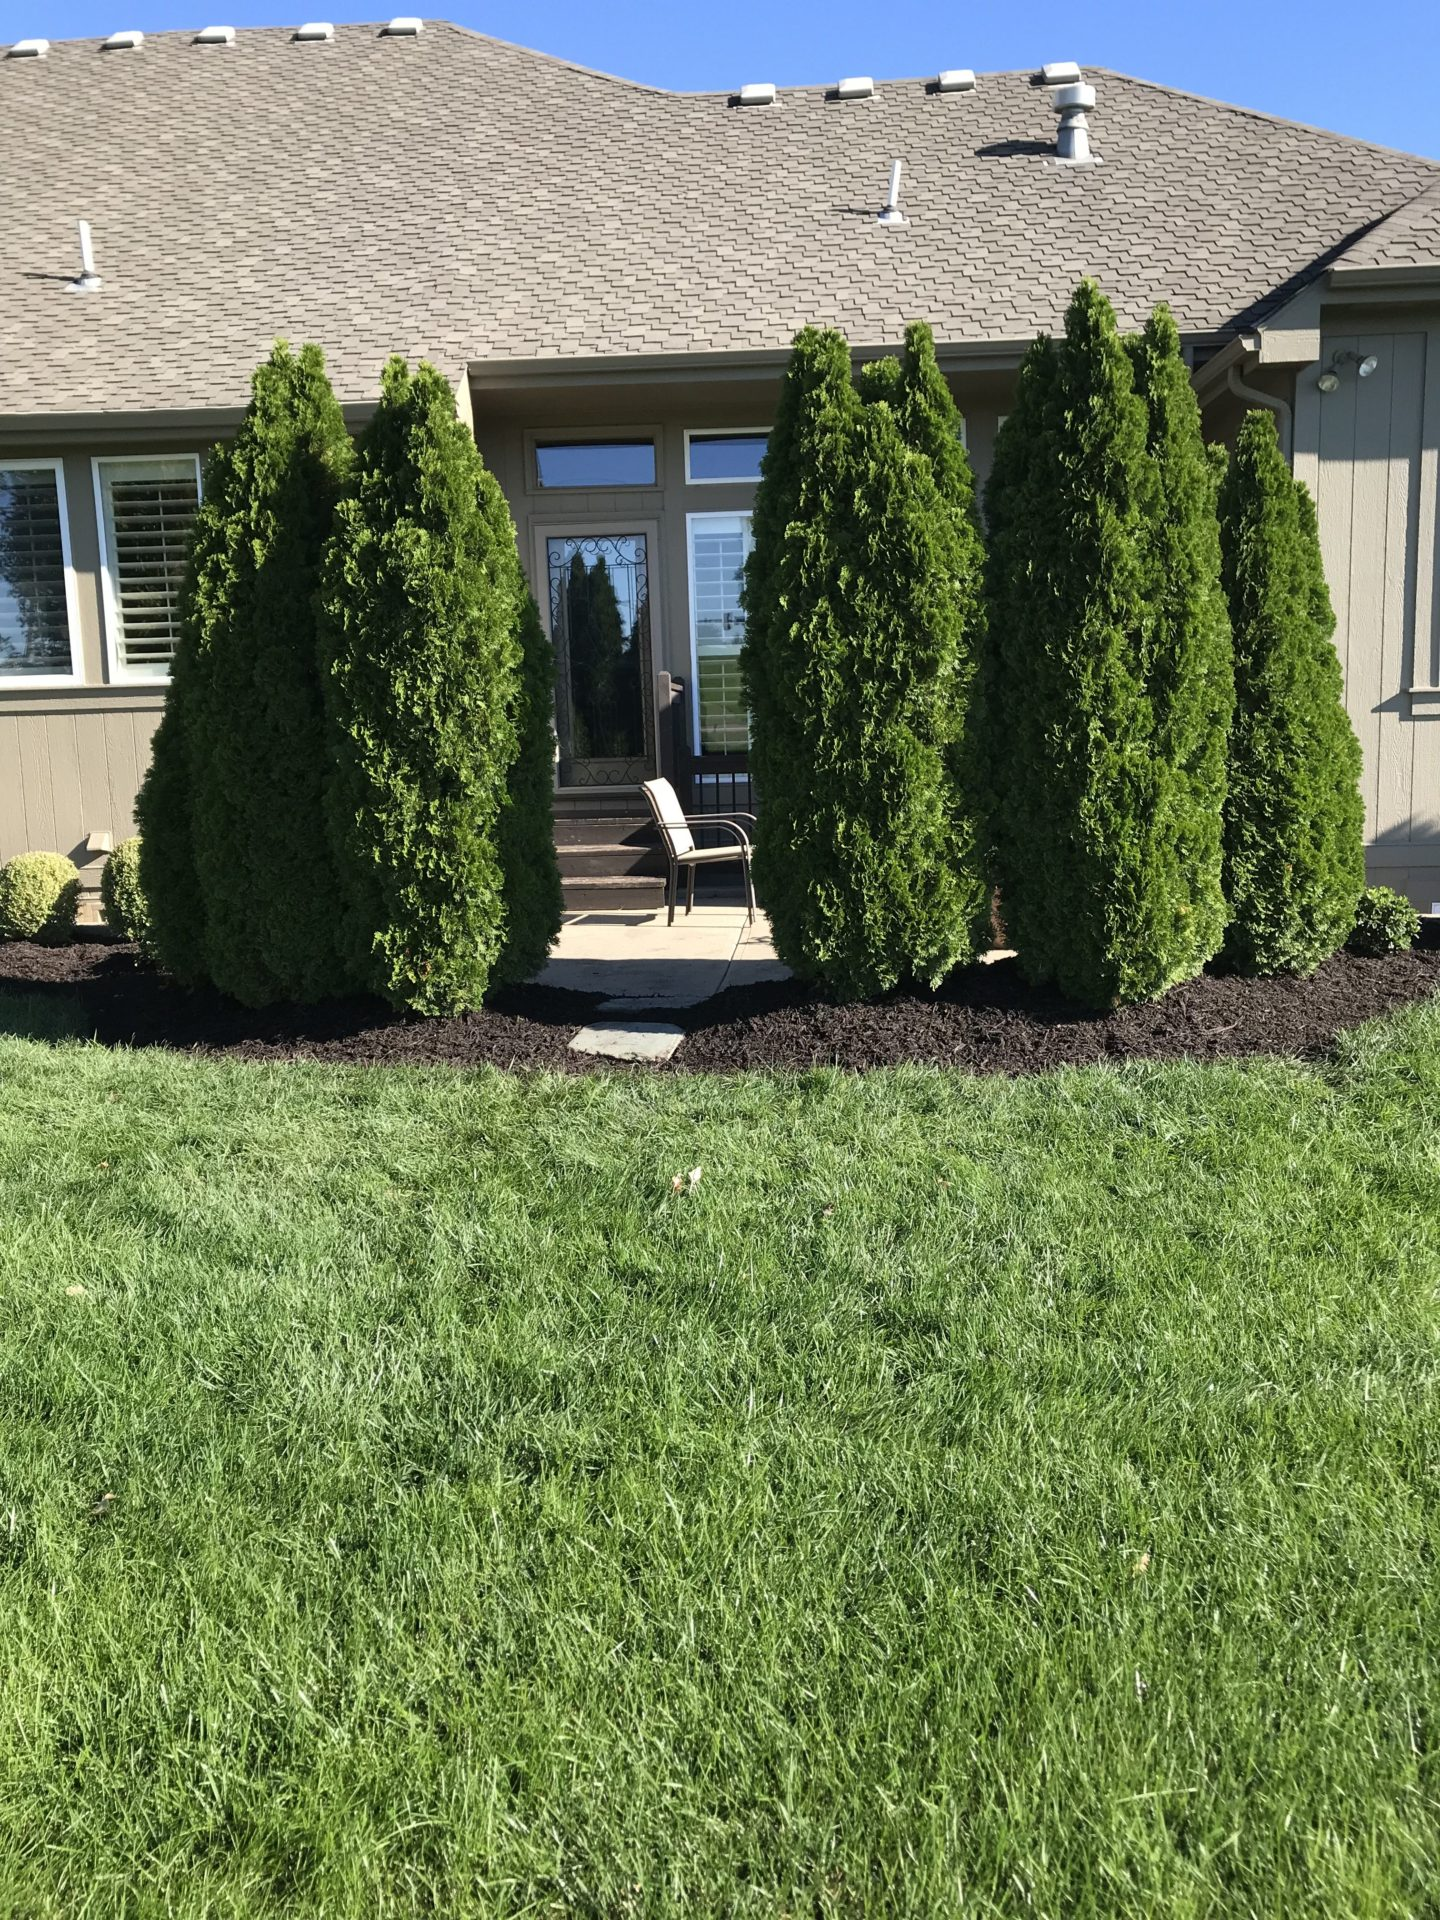 Shrub Wall Lawn Care Companies In Kc Ldk Lawn Services